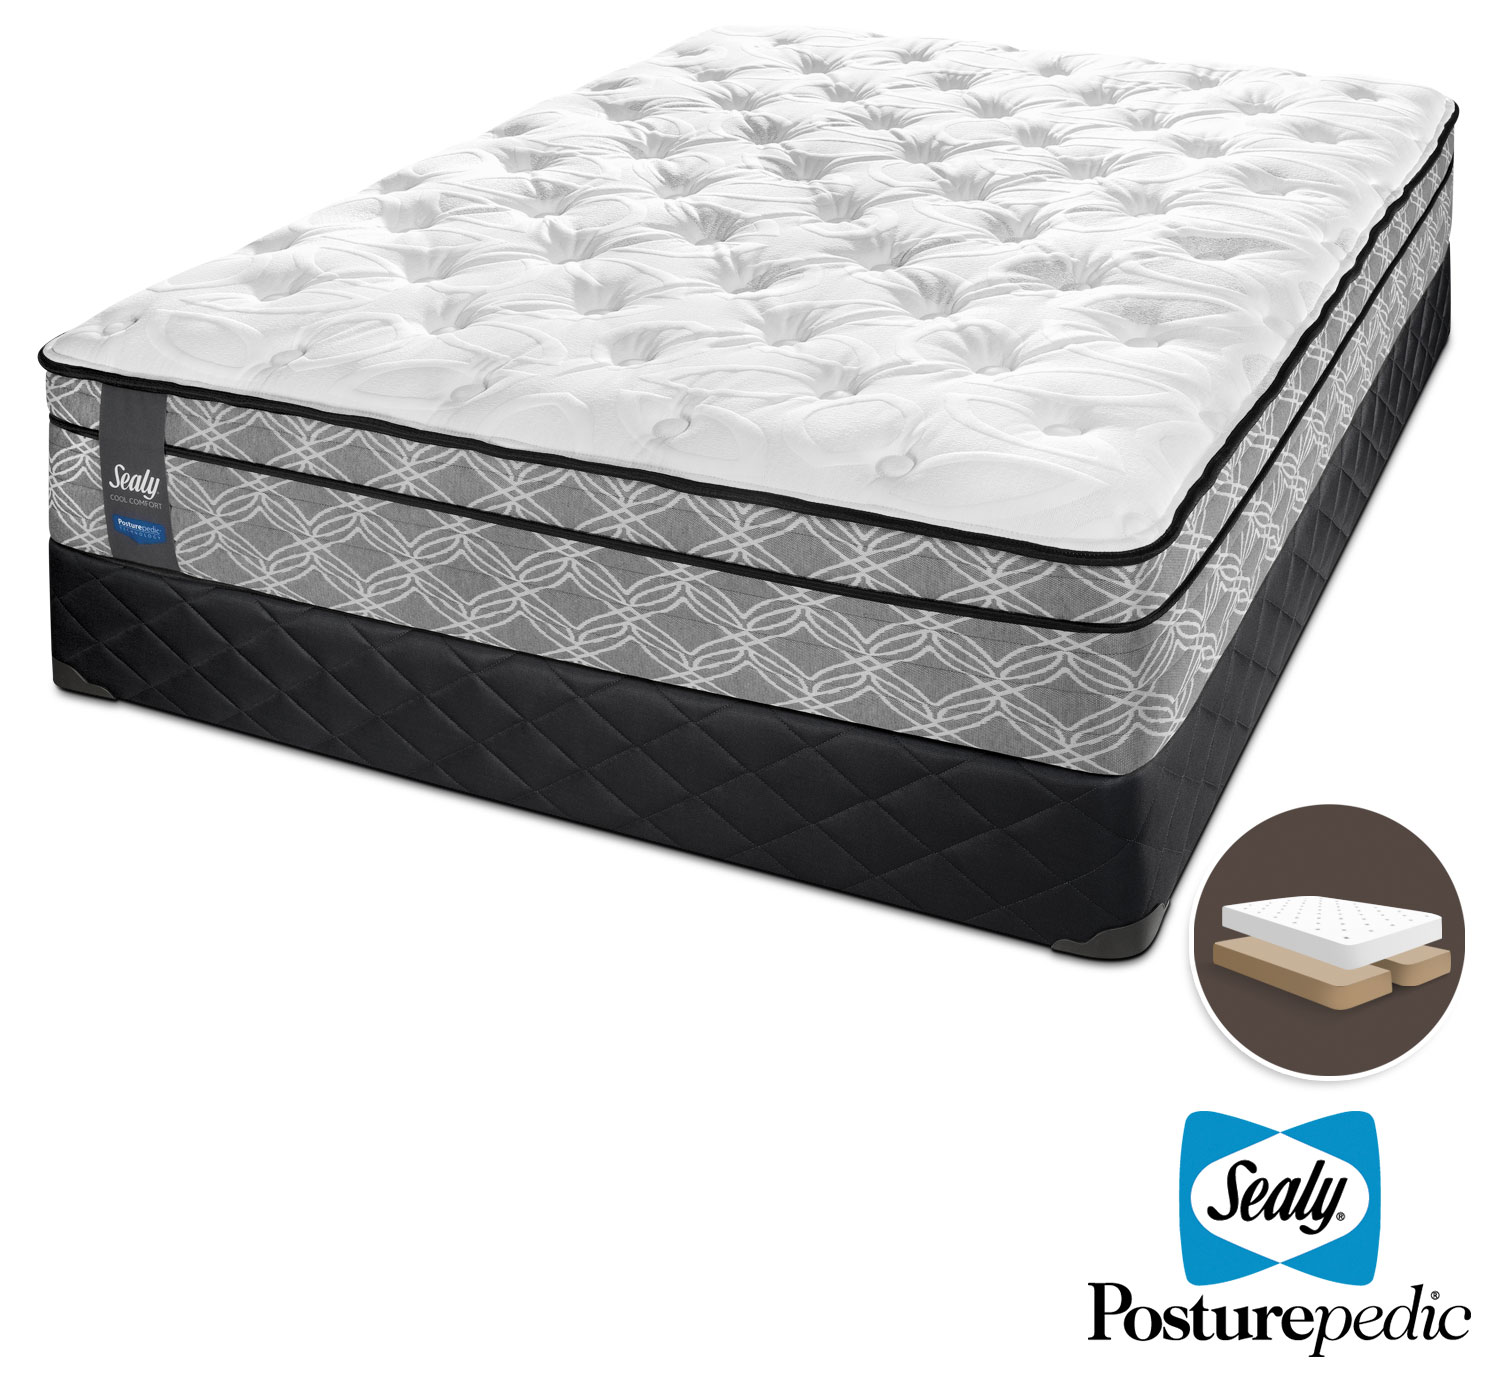 sealy moonshade firm king mattress and split boxspring set - Box Spring Mattress